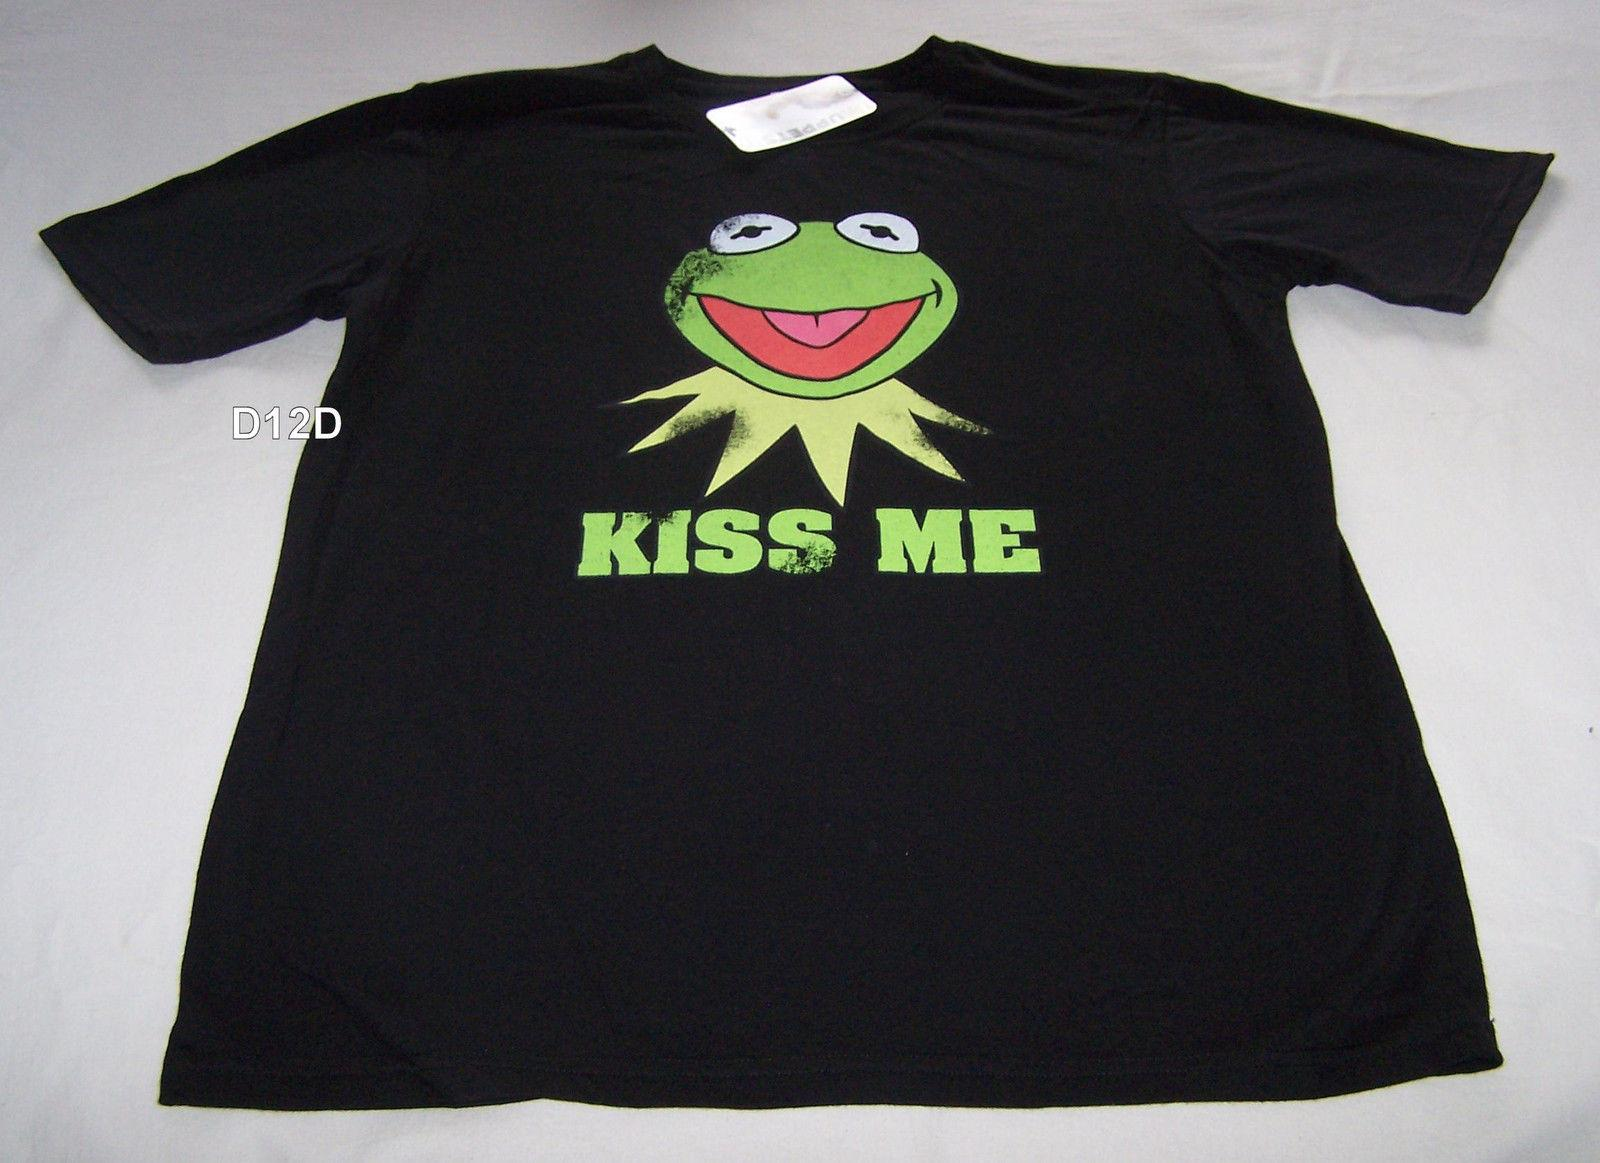 b0b39957 The Muppets Kermit The Frog Mens Black Kiss Me Printed T Shirt Size S New  New High Quality Top Tee Print Tshirt And Shirt Shirts Cool From  Spidermantees, ...